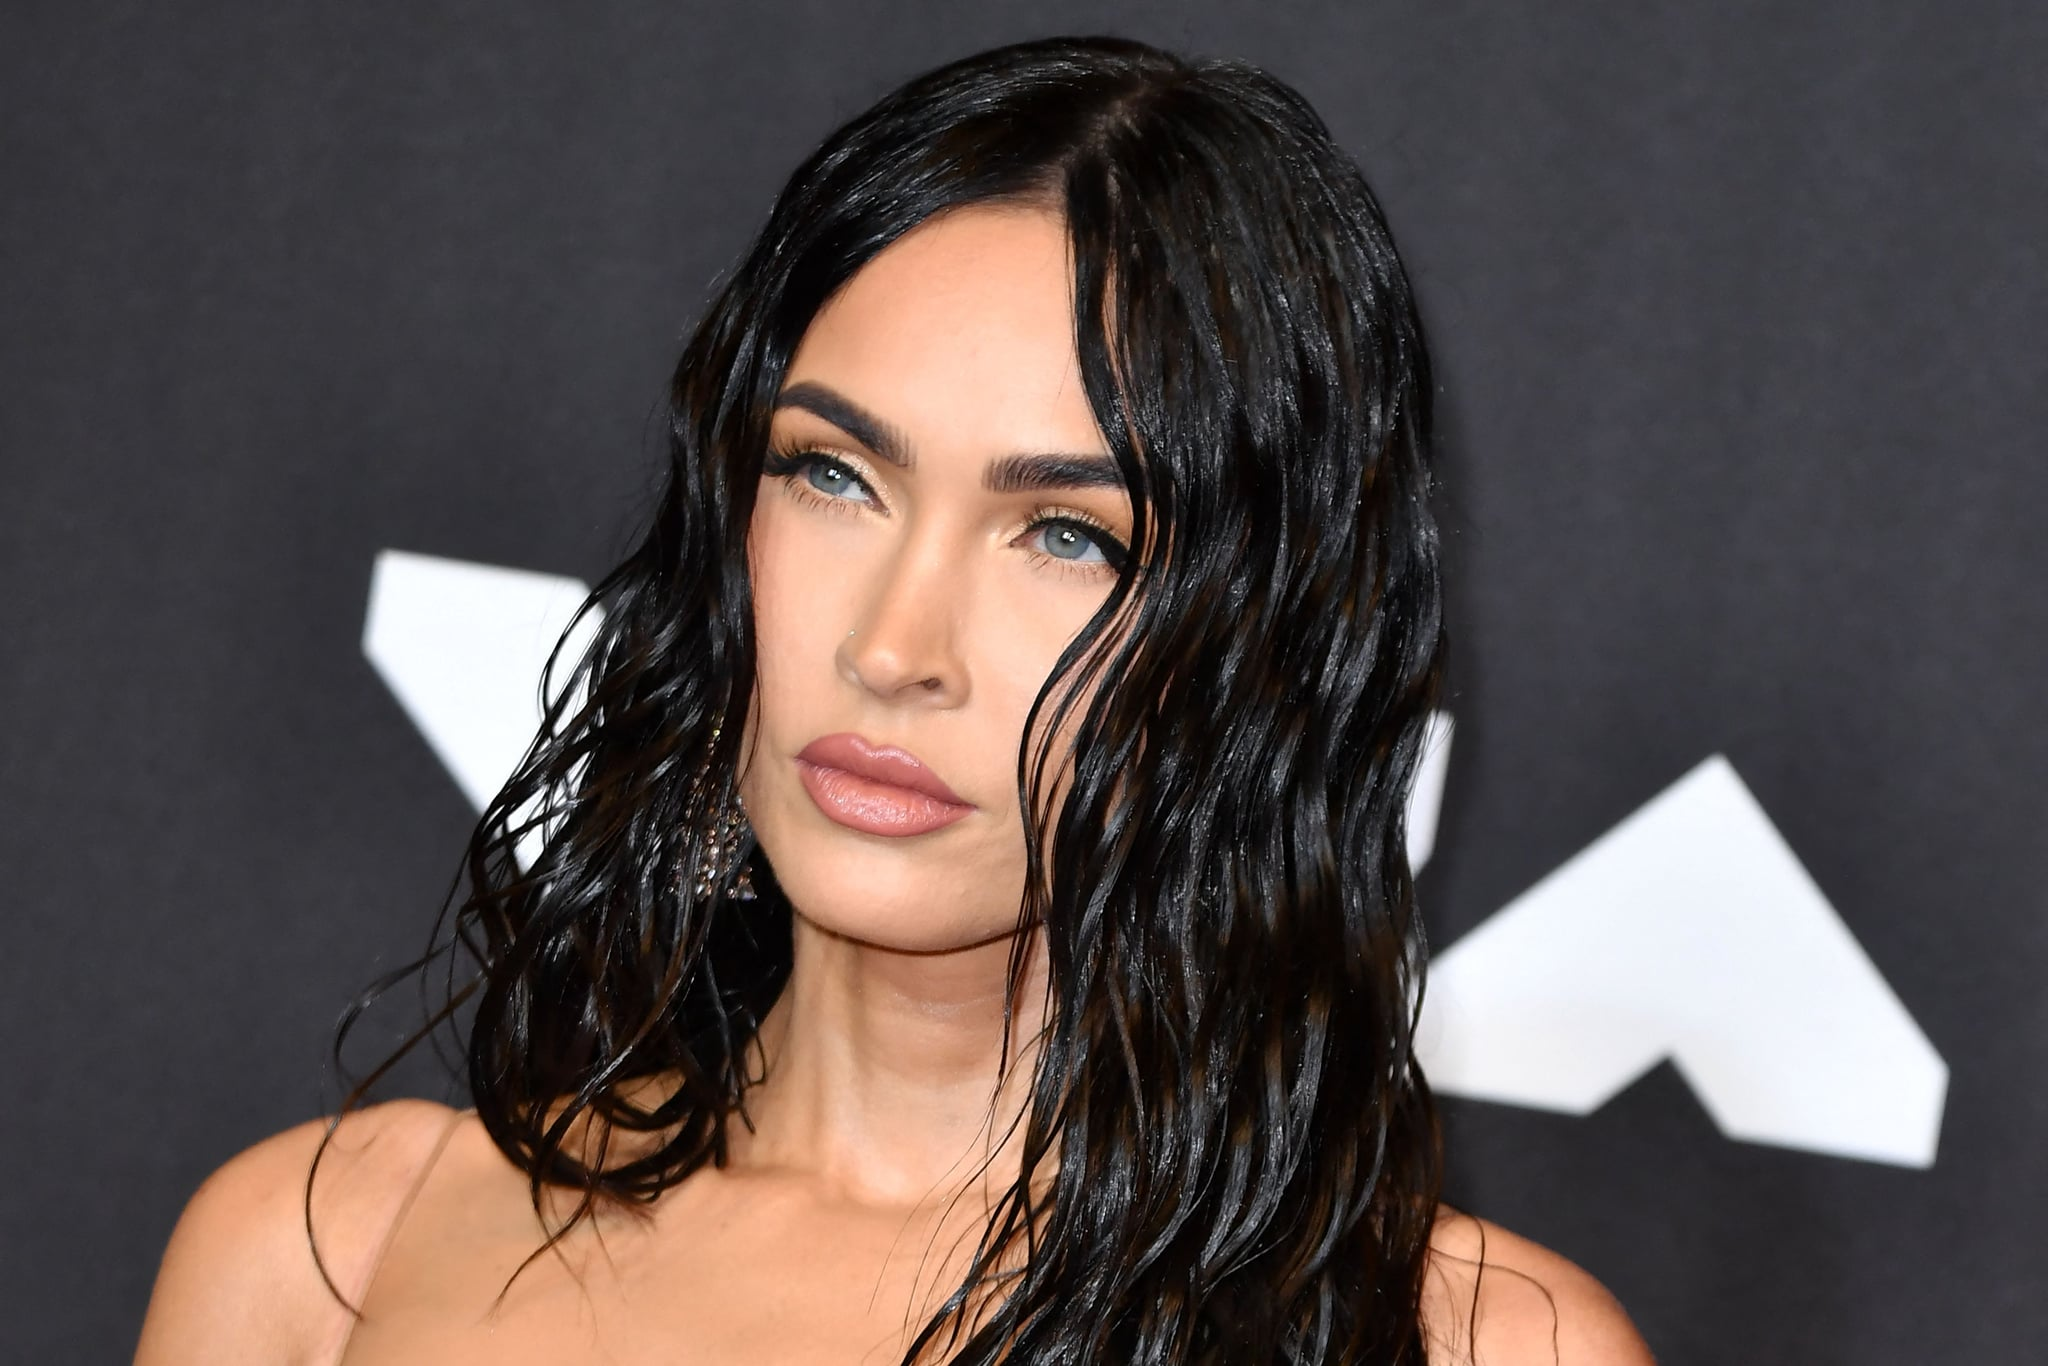 US actress Megan Fox arrives for the 2021 MTV Video Music Awards at Barclays Center in Brooklyn, New York, September 12, 2021. (Photo by ANGELA  WEISS / AFP) (Photo by ANGELA  WEISS/AFP via Getty Images)